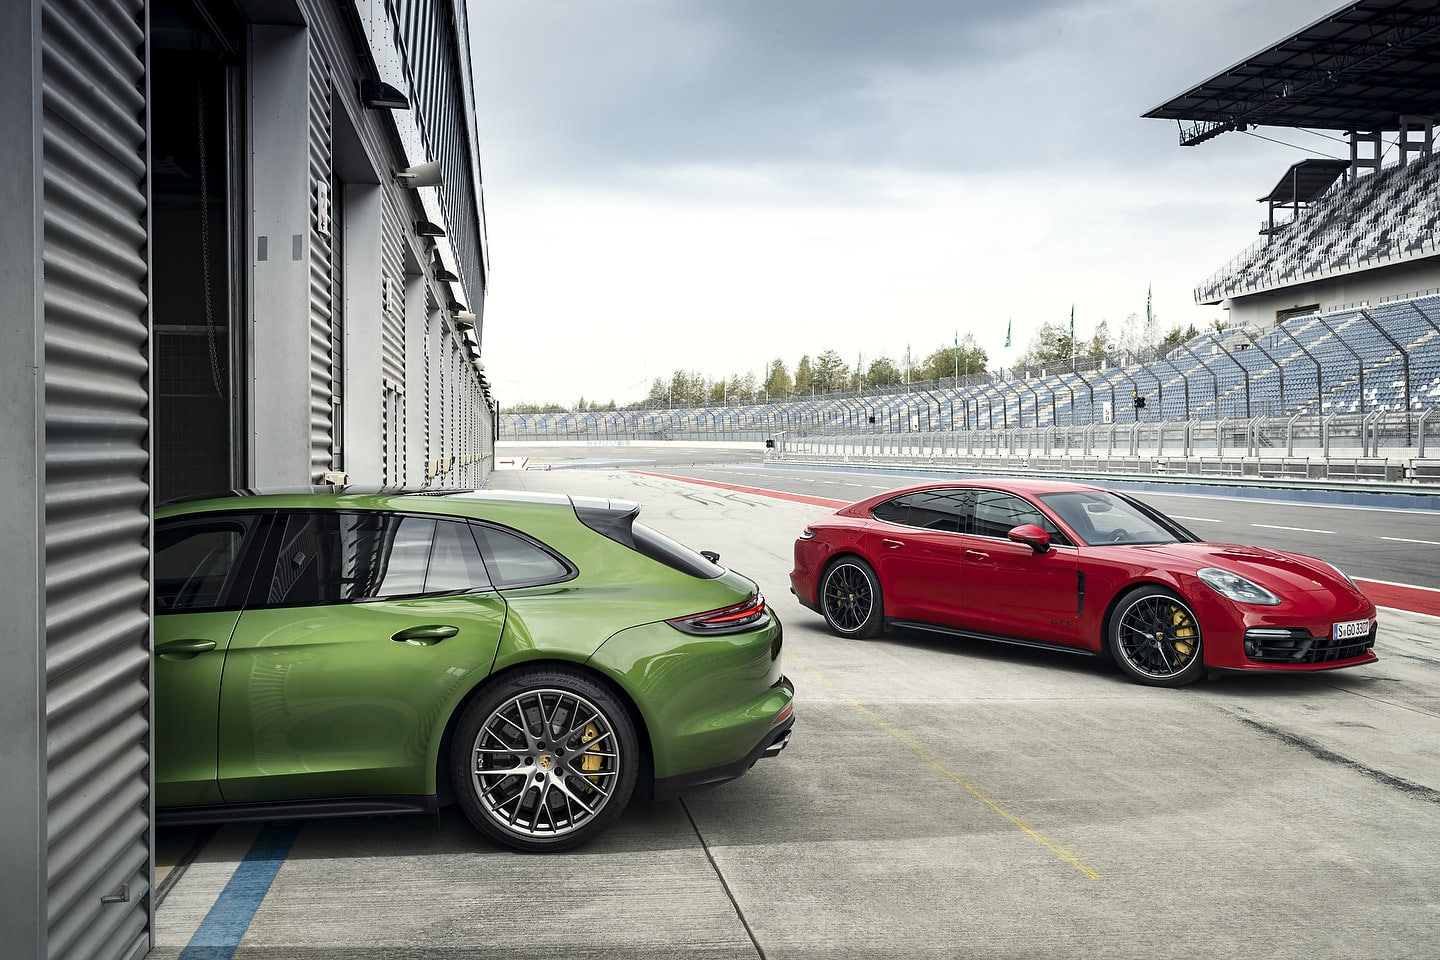 2020 porsche panamera gts and gts sport turismo on their way motor illustrated